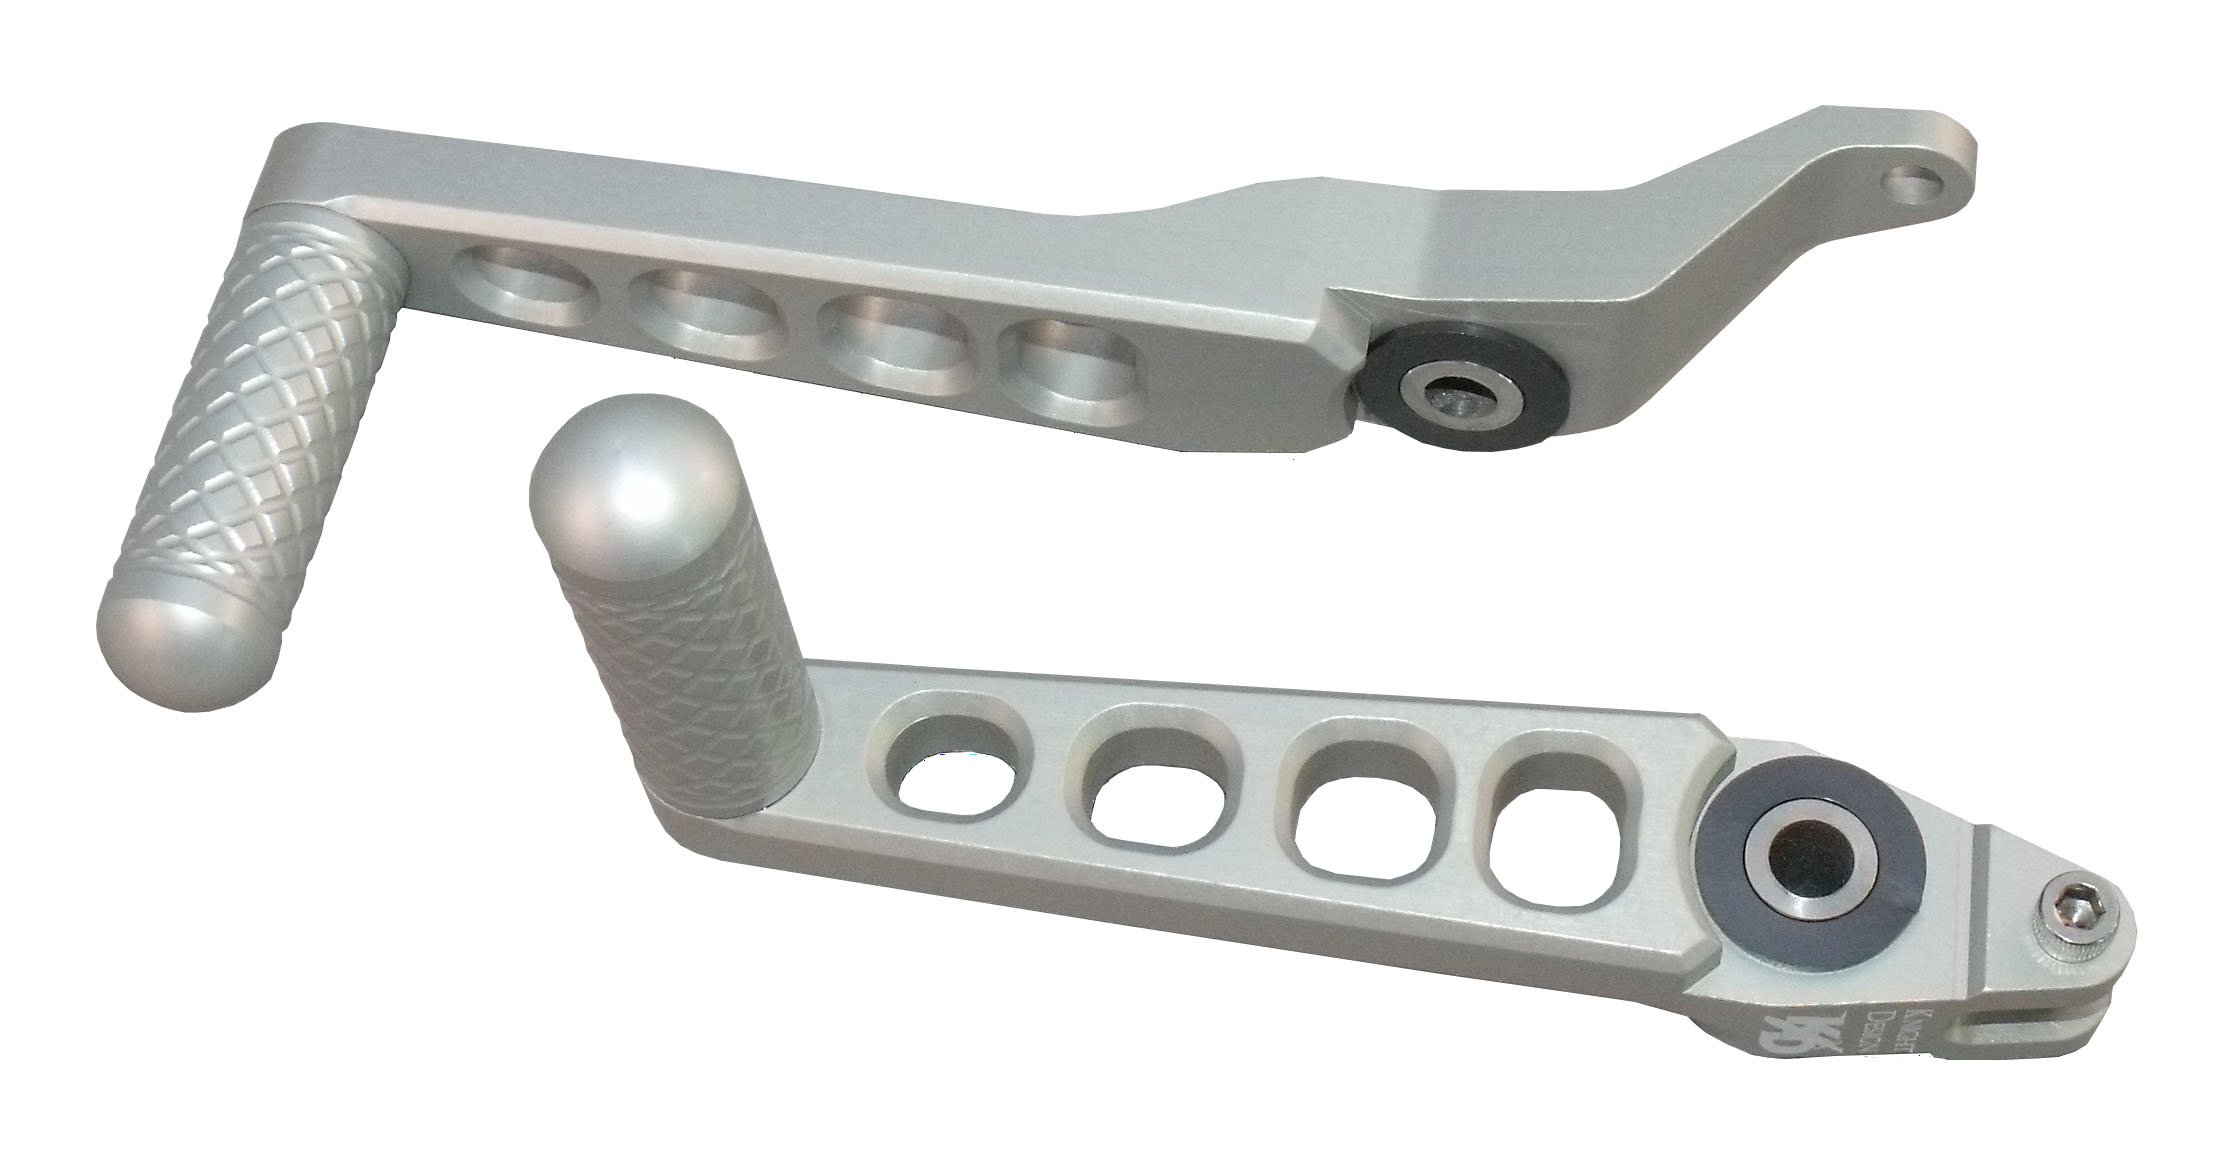 Knight Design Shift And Brake Foot Levers for Buell XB9SX, XB12SX Lightning City X Models, silver anodized